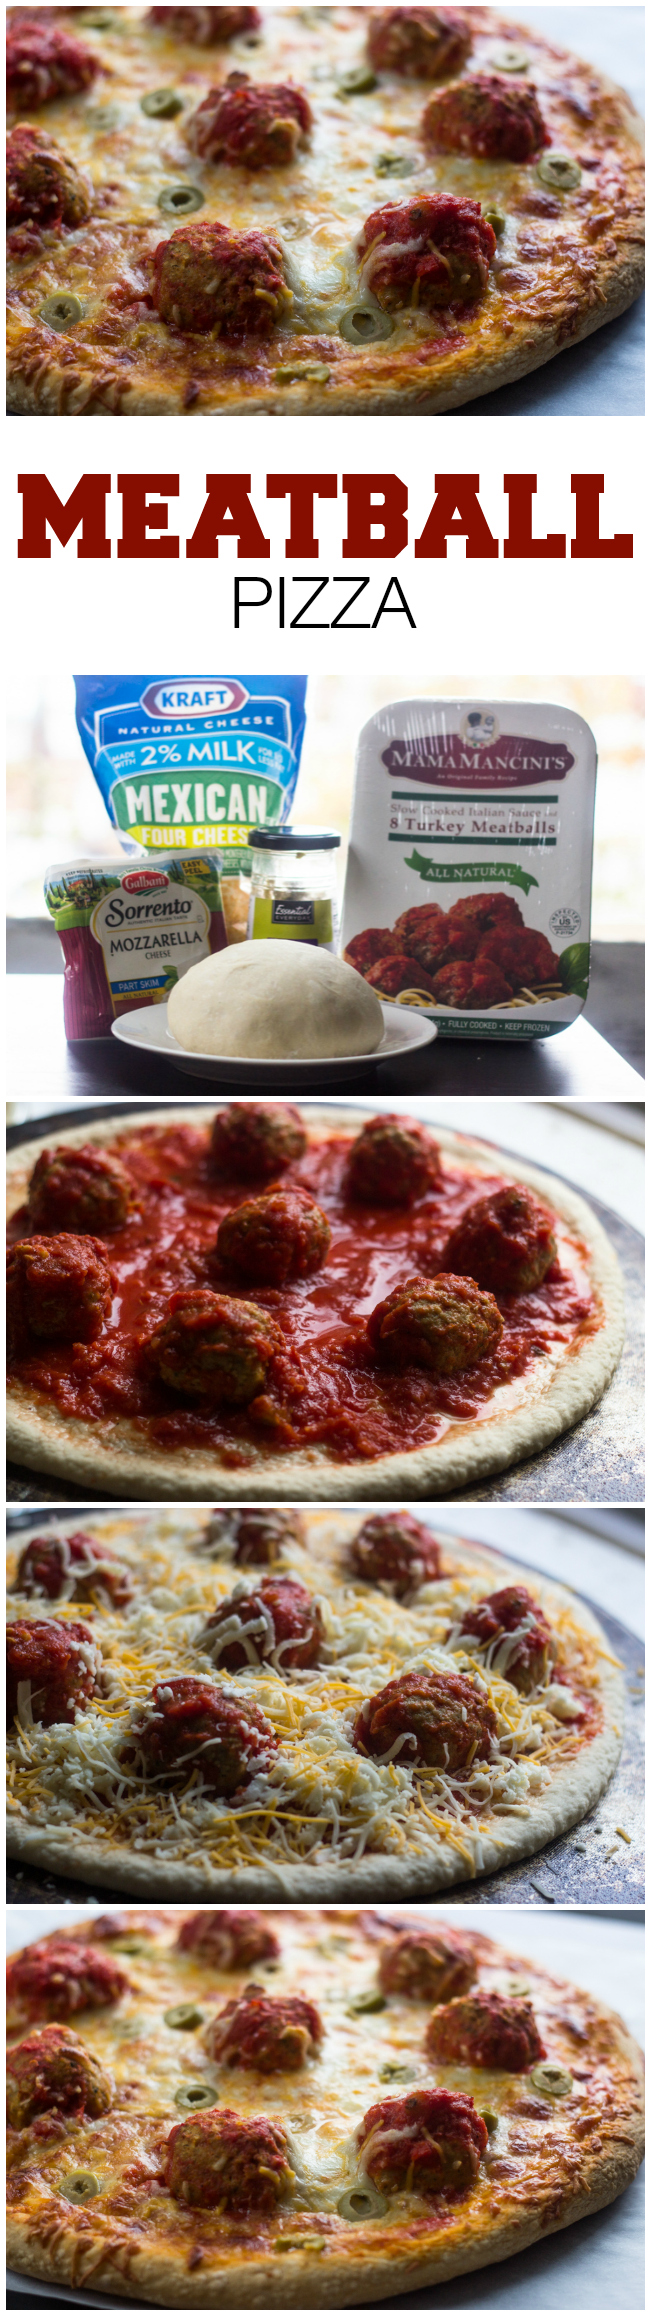 Meatball Pizza | Gimme Delicious